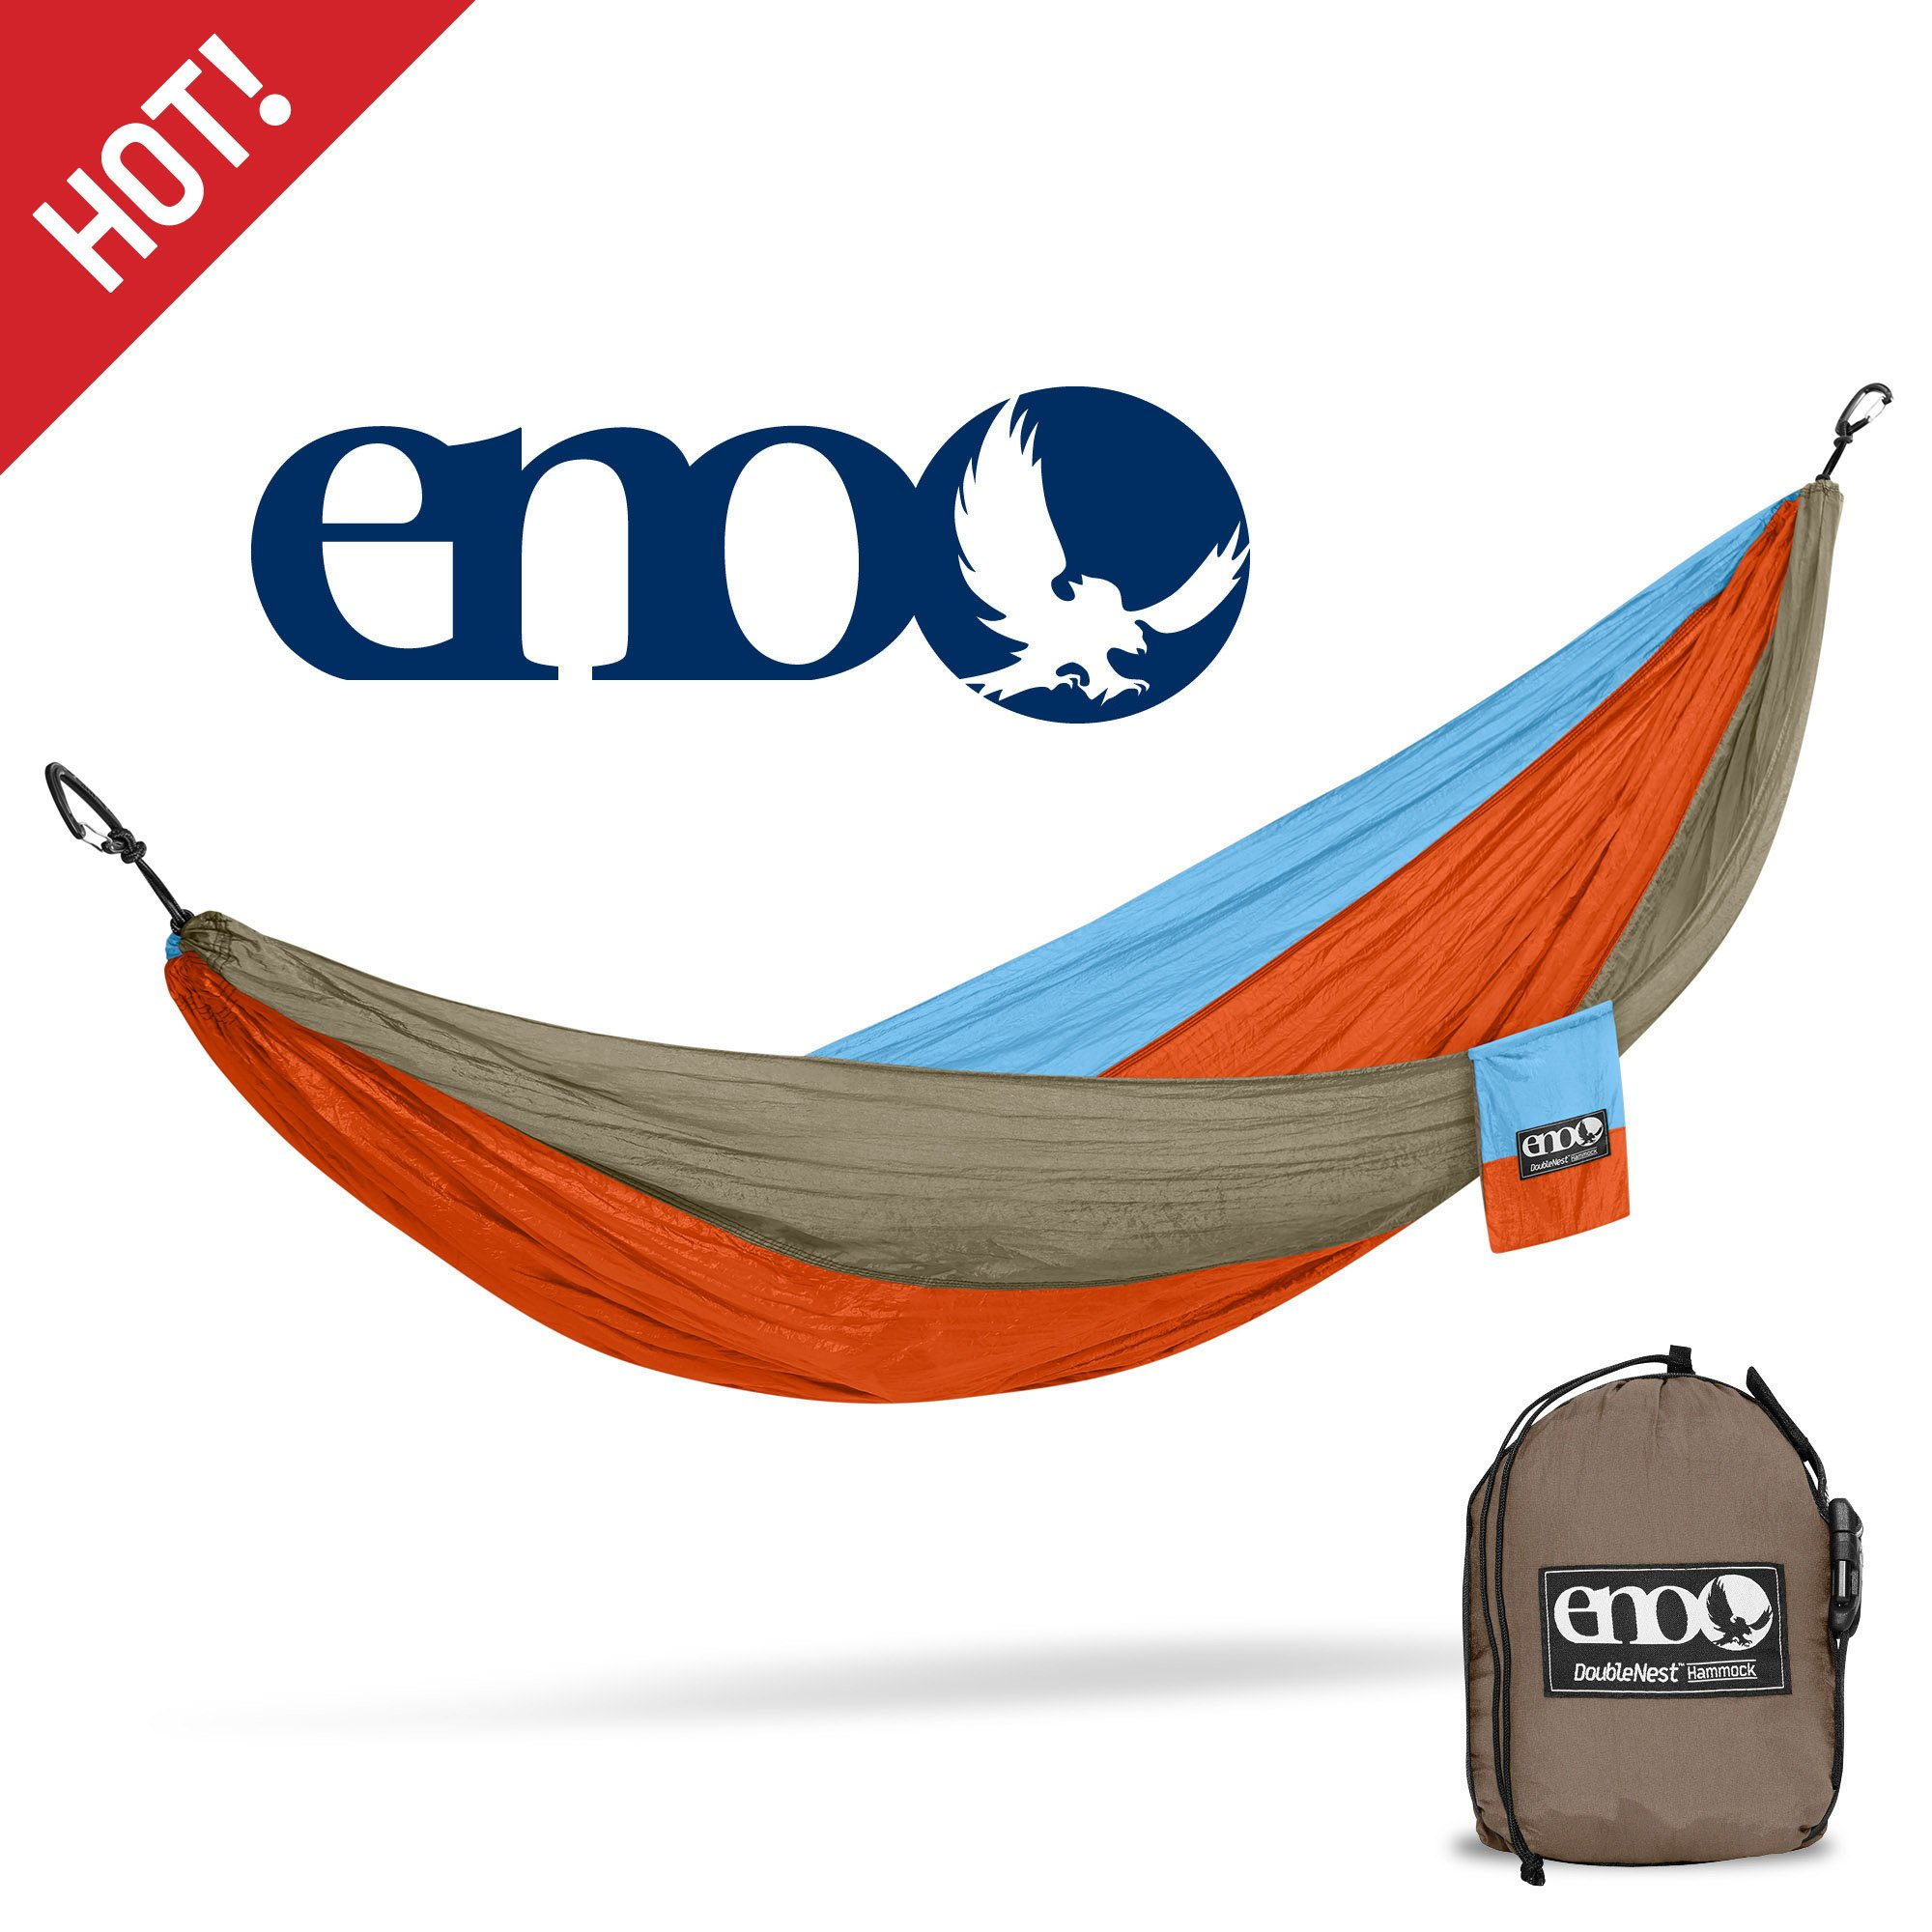 ENO Eagles Nest Outfitters - DoubleNest Hammock, Portable Hammock for Two, Powder Blue/Orange/Khaki